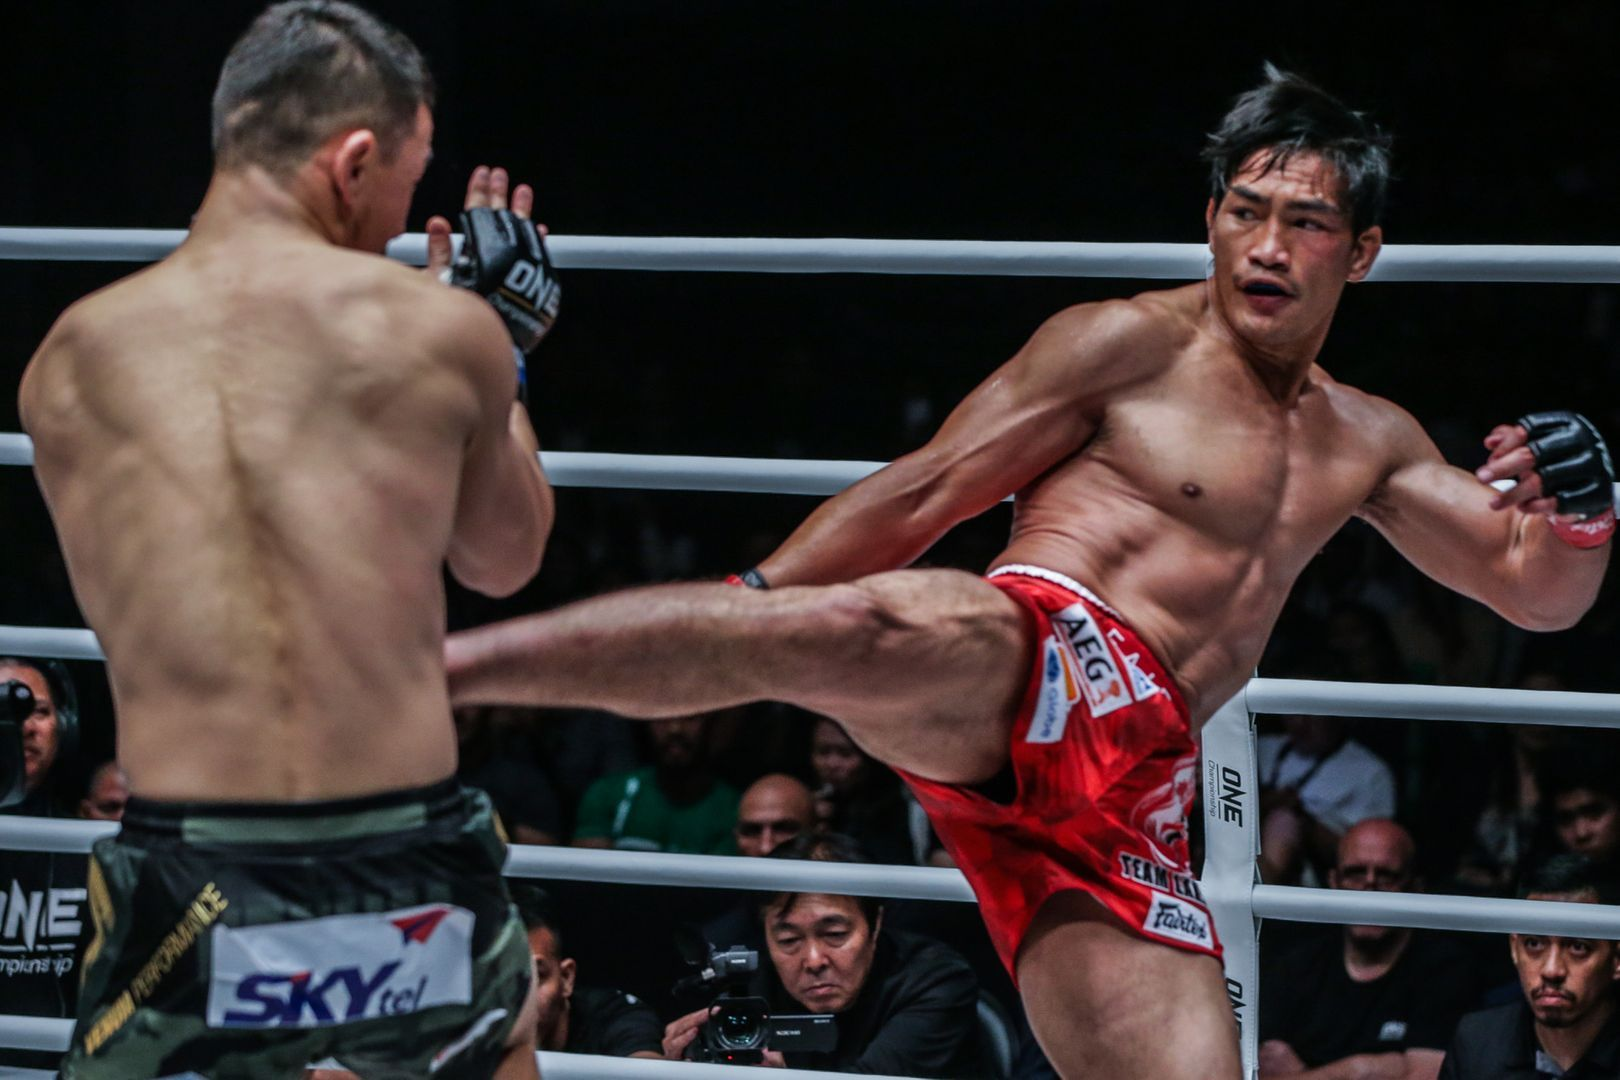 Eduard Folayang attacks Amarsanaa Tsogookhuu at ONE MASTERS OF FATE